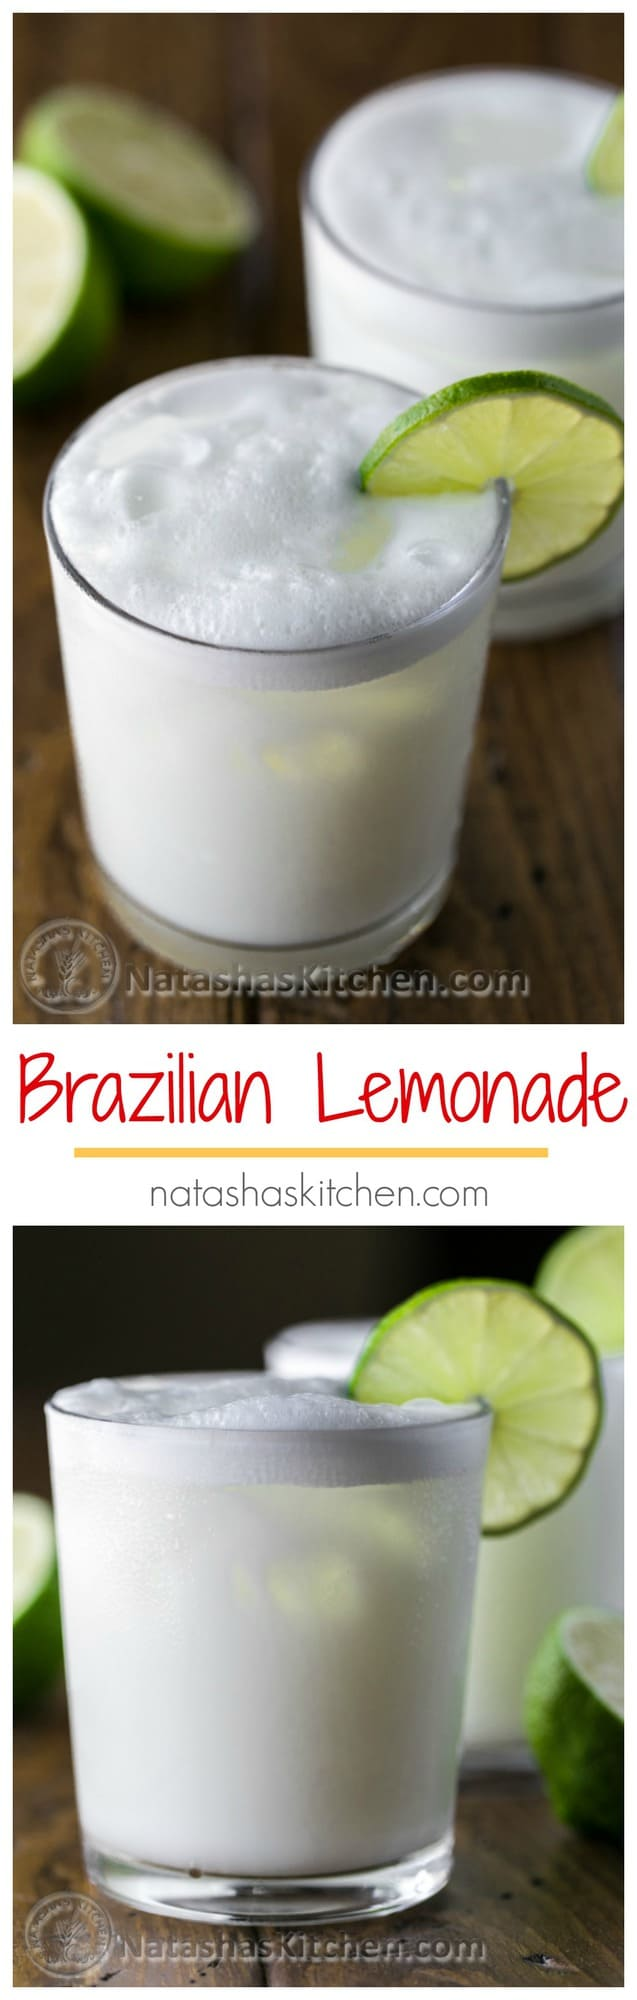 Have you tried Brazilian Lemonade? It's refreshing and smooth. You'll be surprised by the list of ingredients! | natashaskitchen.com